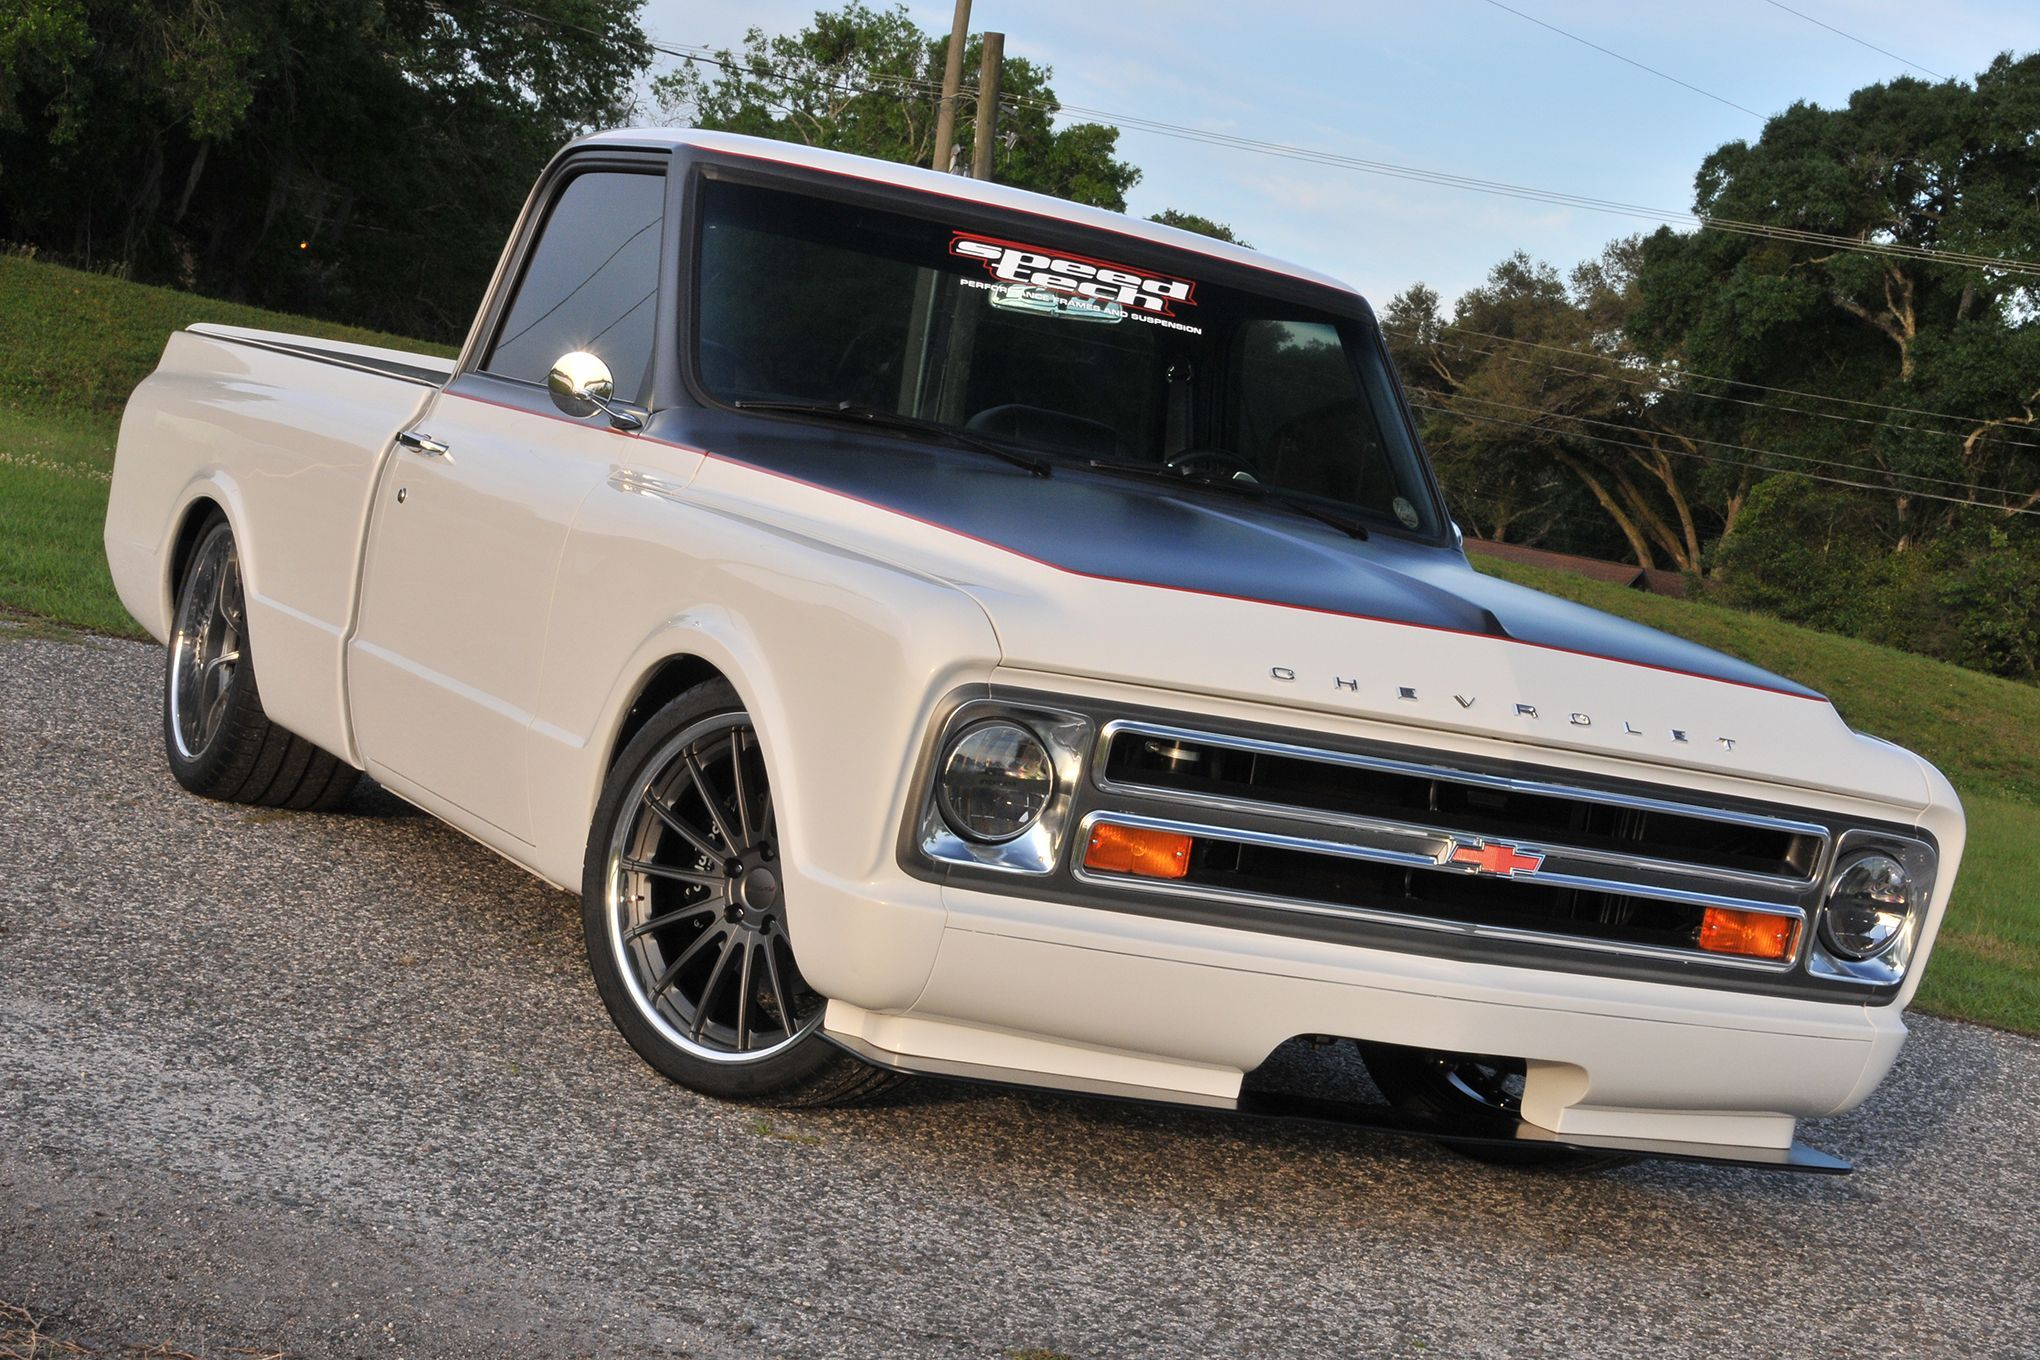 1972 chevrolet custom deluxe c 10 c10 c 10 c 10 pickup truck chevy 1 2 - This Gorgeous 68 Chevy C10 Truck By Tom Argue Design Is Powered By